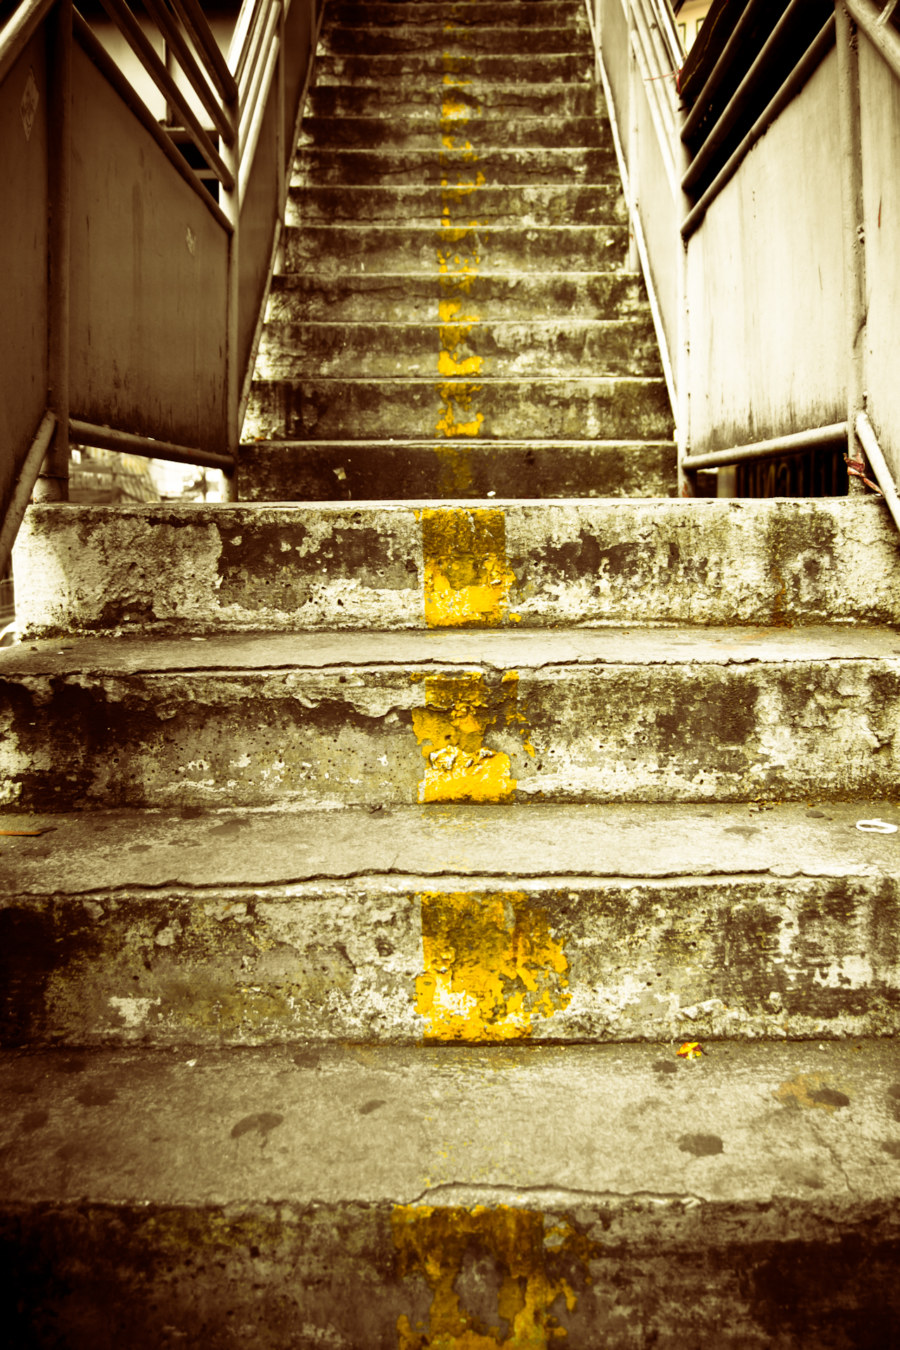 The gritty stairs of a pedestrian overpass